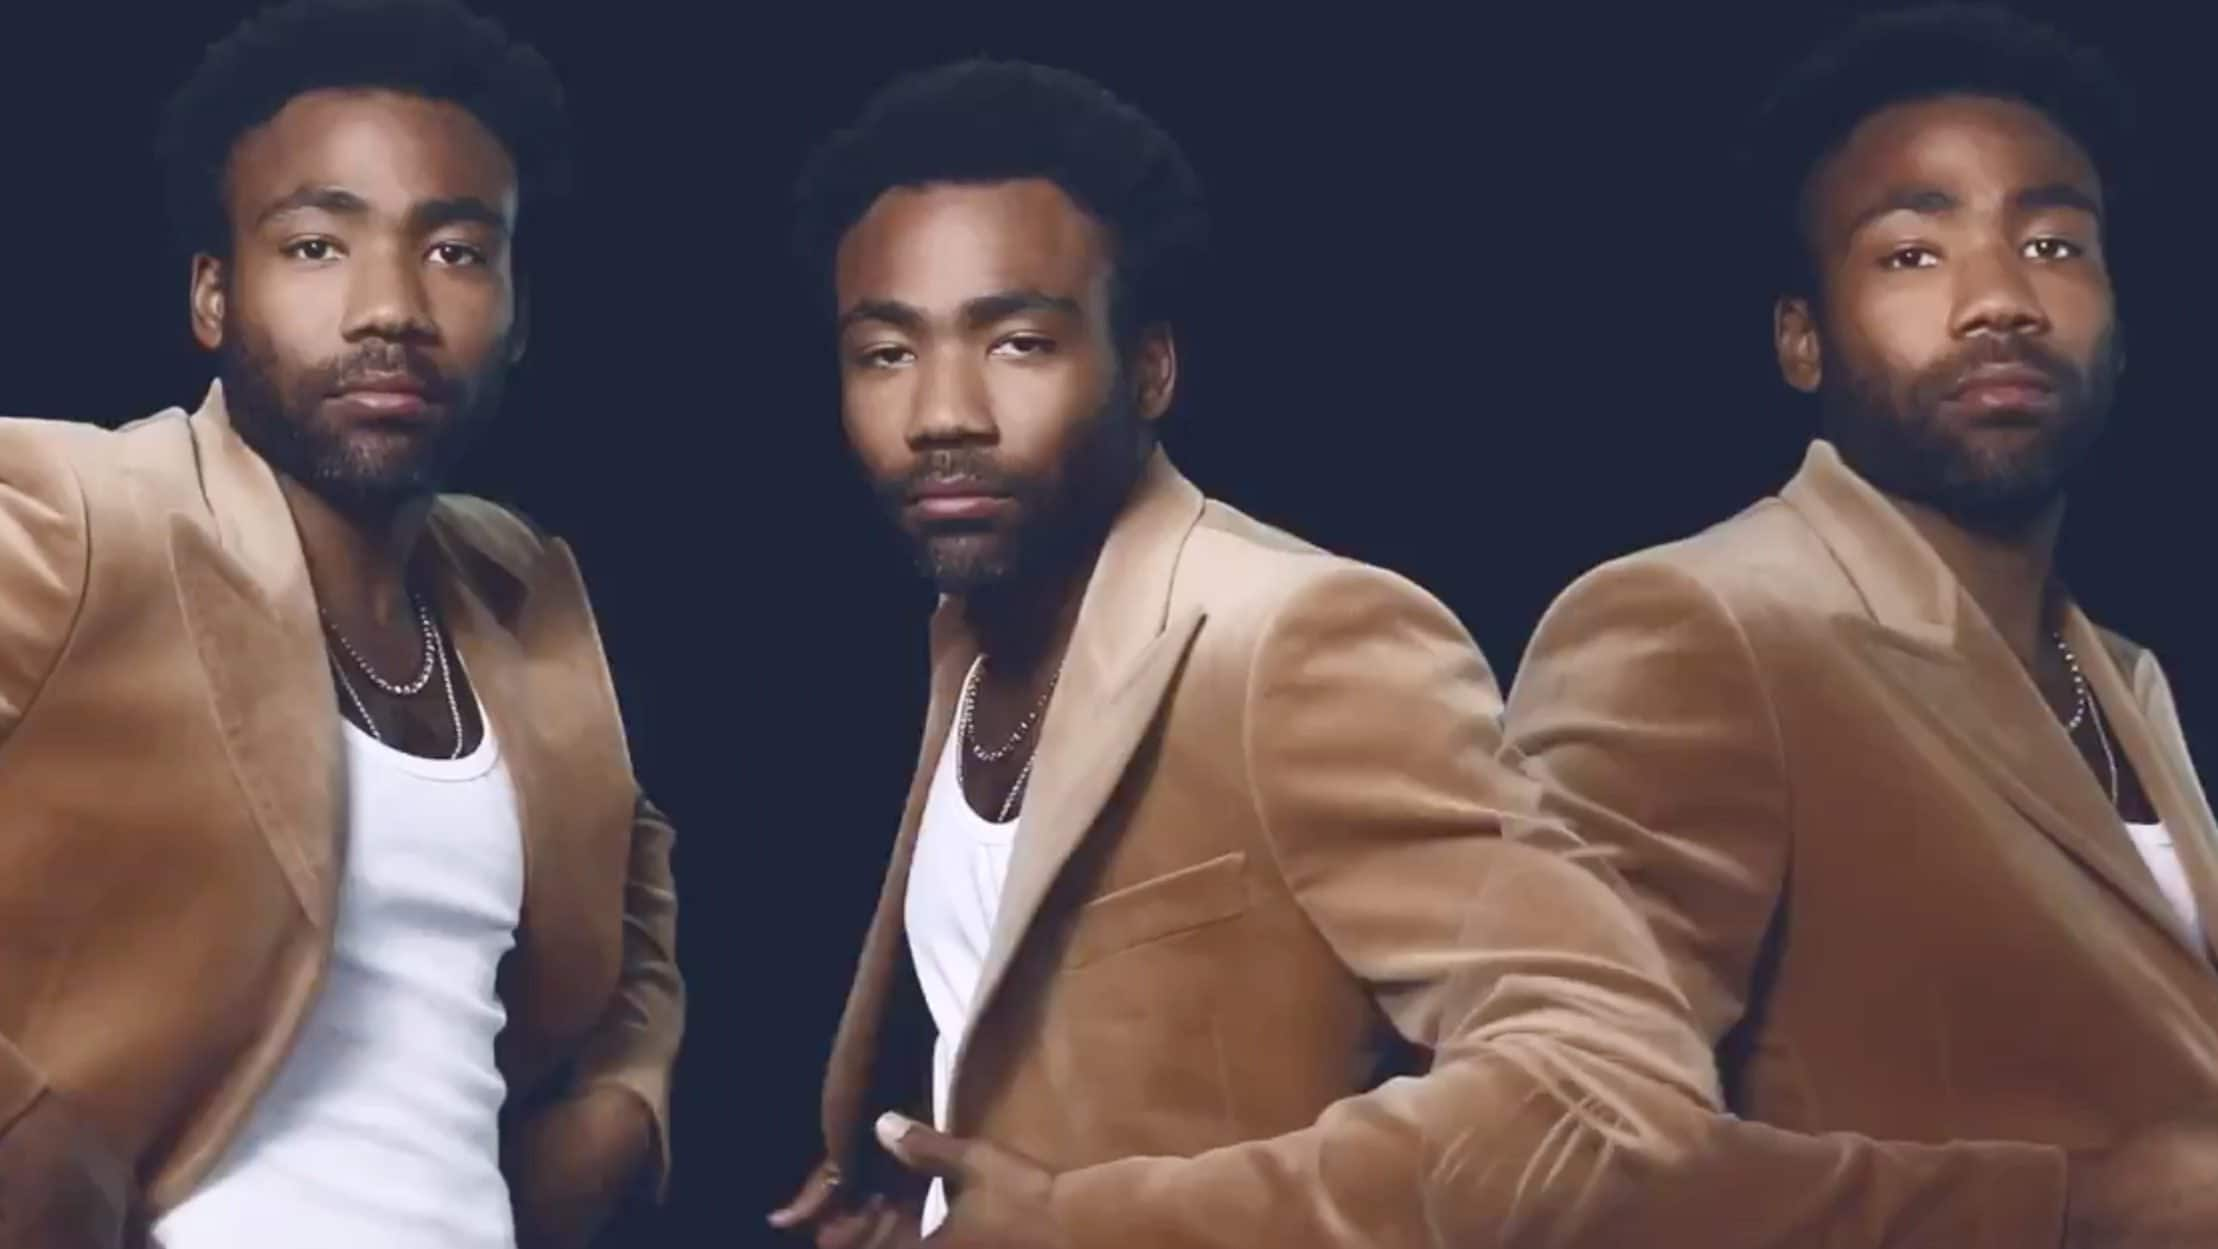 Childish Gambino's 'This Is America' Video Tackles Gun Violence and Black Life